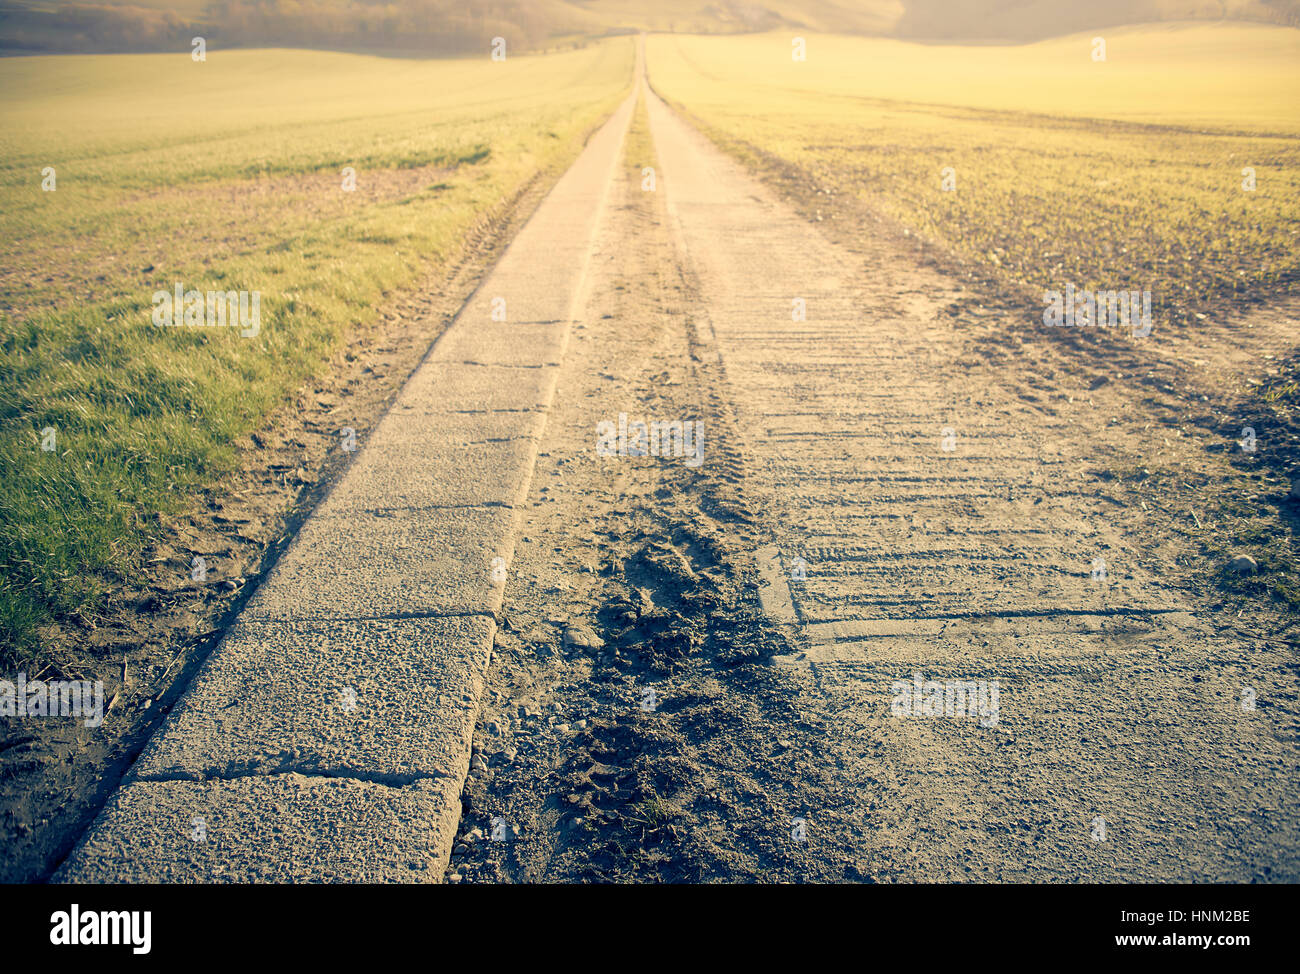 A long straight road leading to a vanishing point - Stock Image